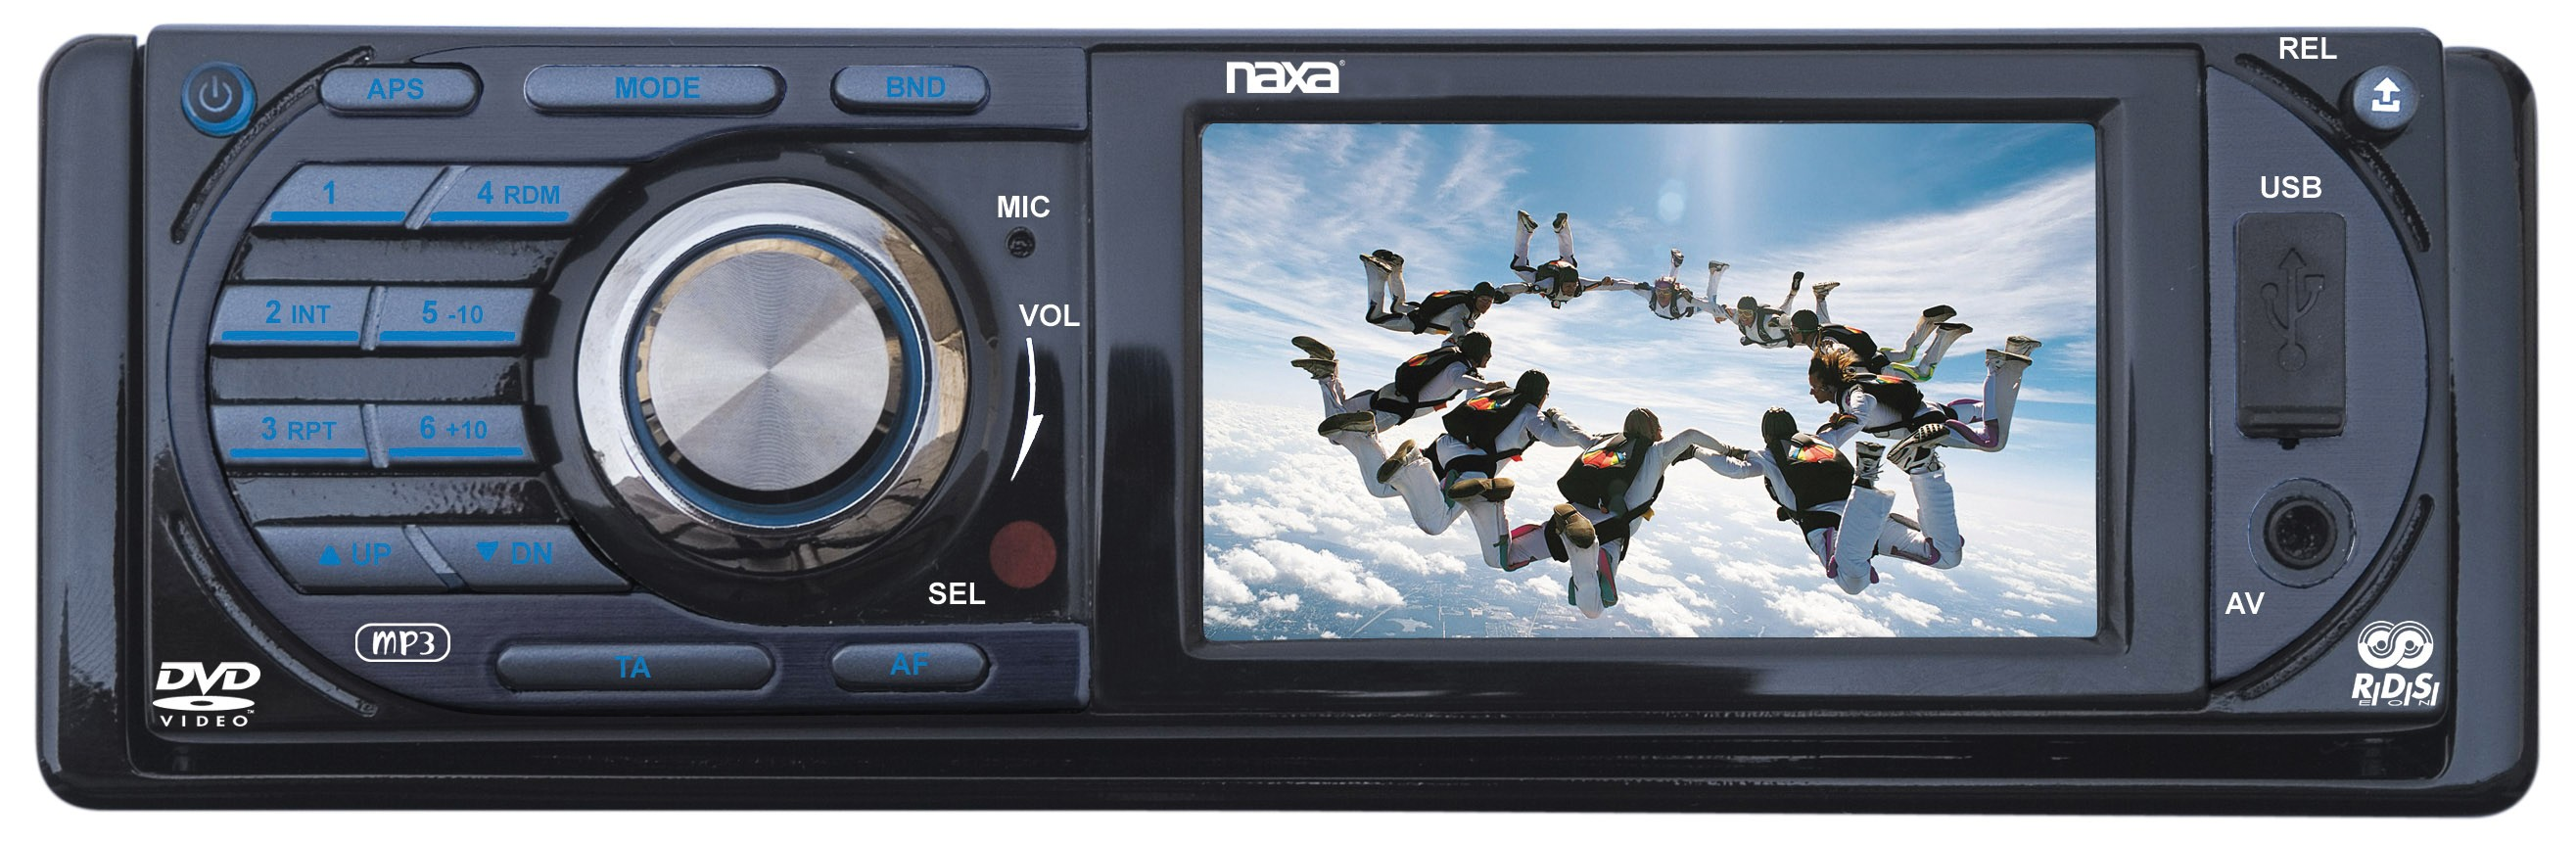 NAXA NCD691 CAR STEREO 3INCH LCD DISPLAY FOLD DOWN DETACH PP